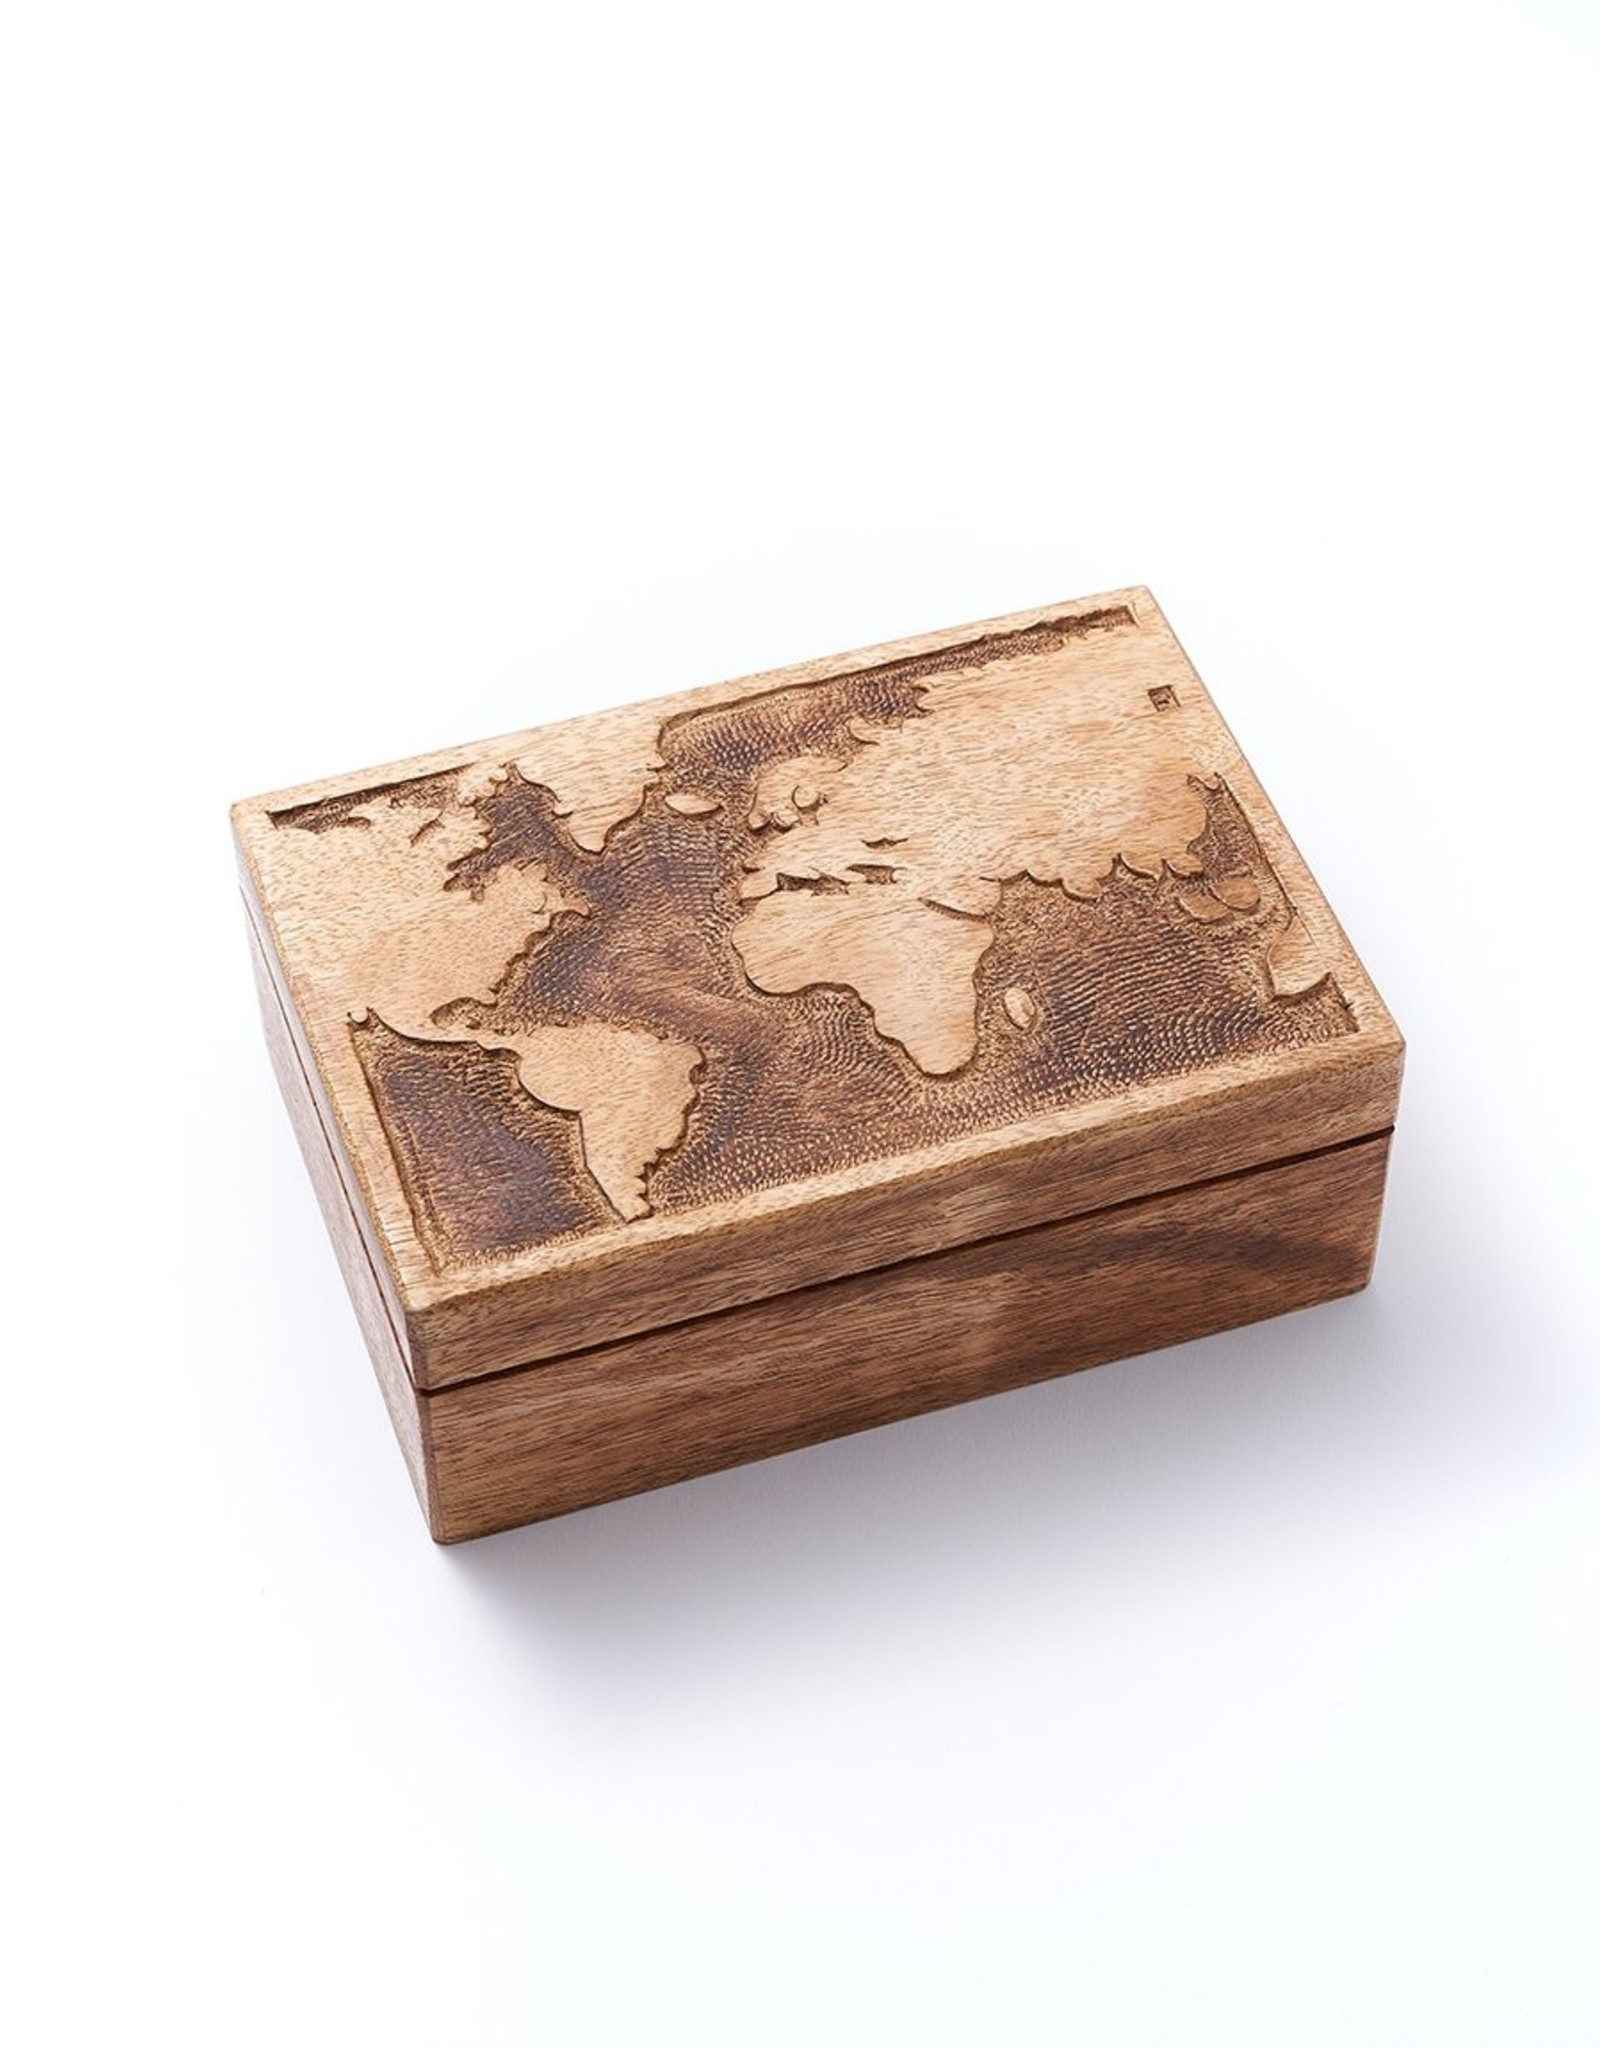 World Spice Box